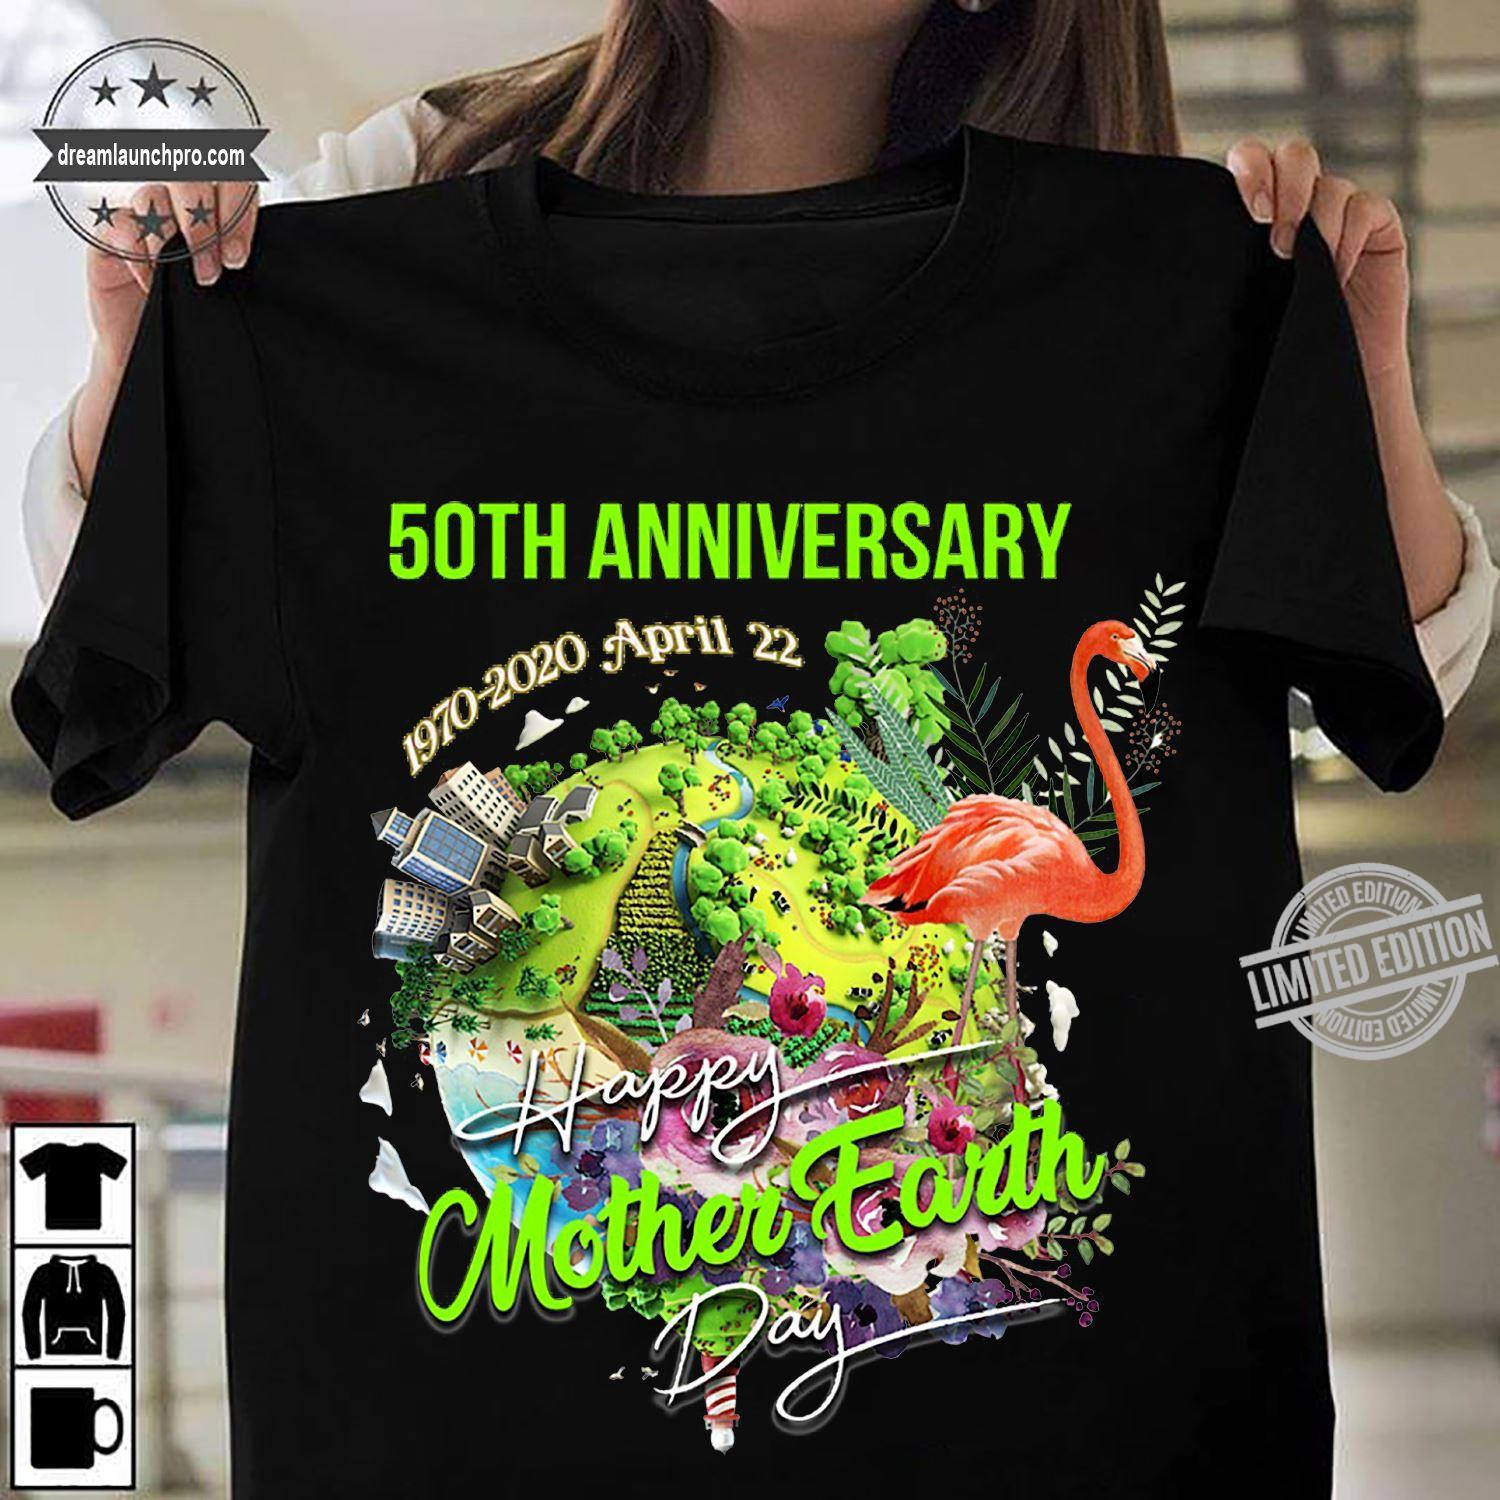 50th Anniversary 1970-2020 April 22 Happy Mother Earth Day Shirt